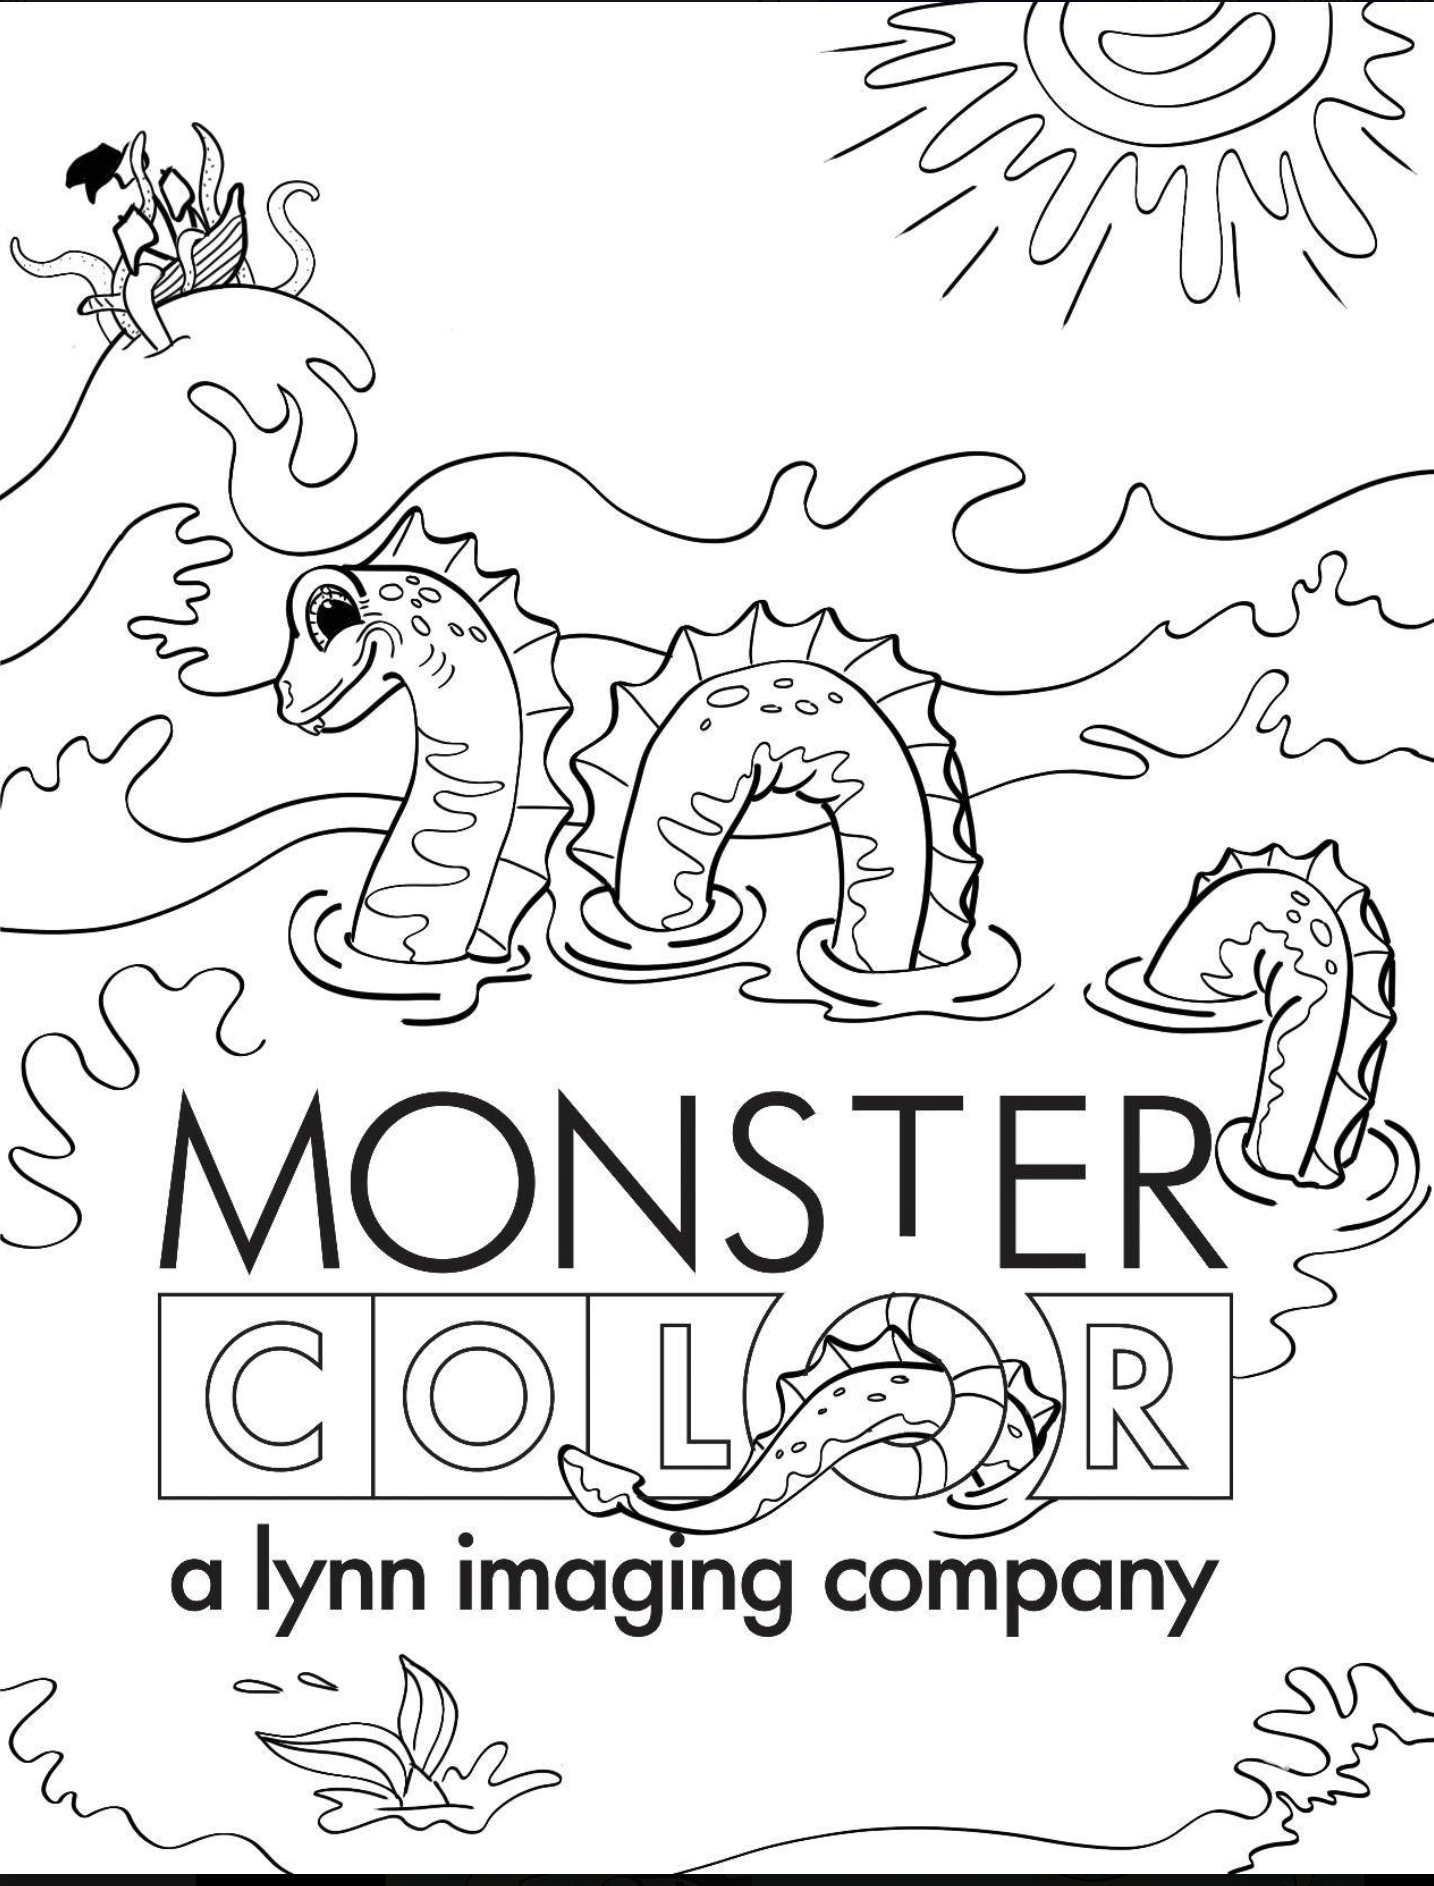 Color Your World Coloring Contest from Monster Color